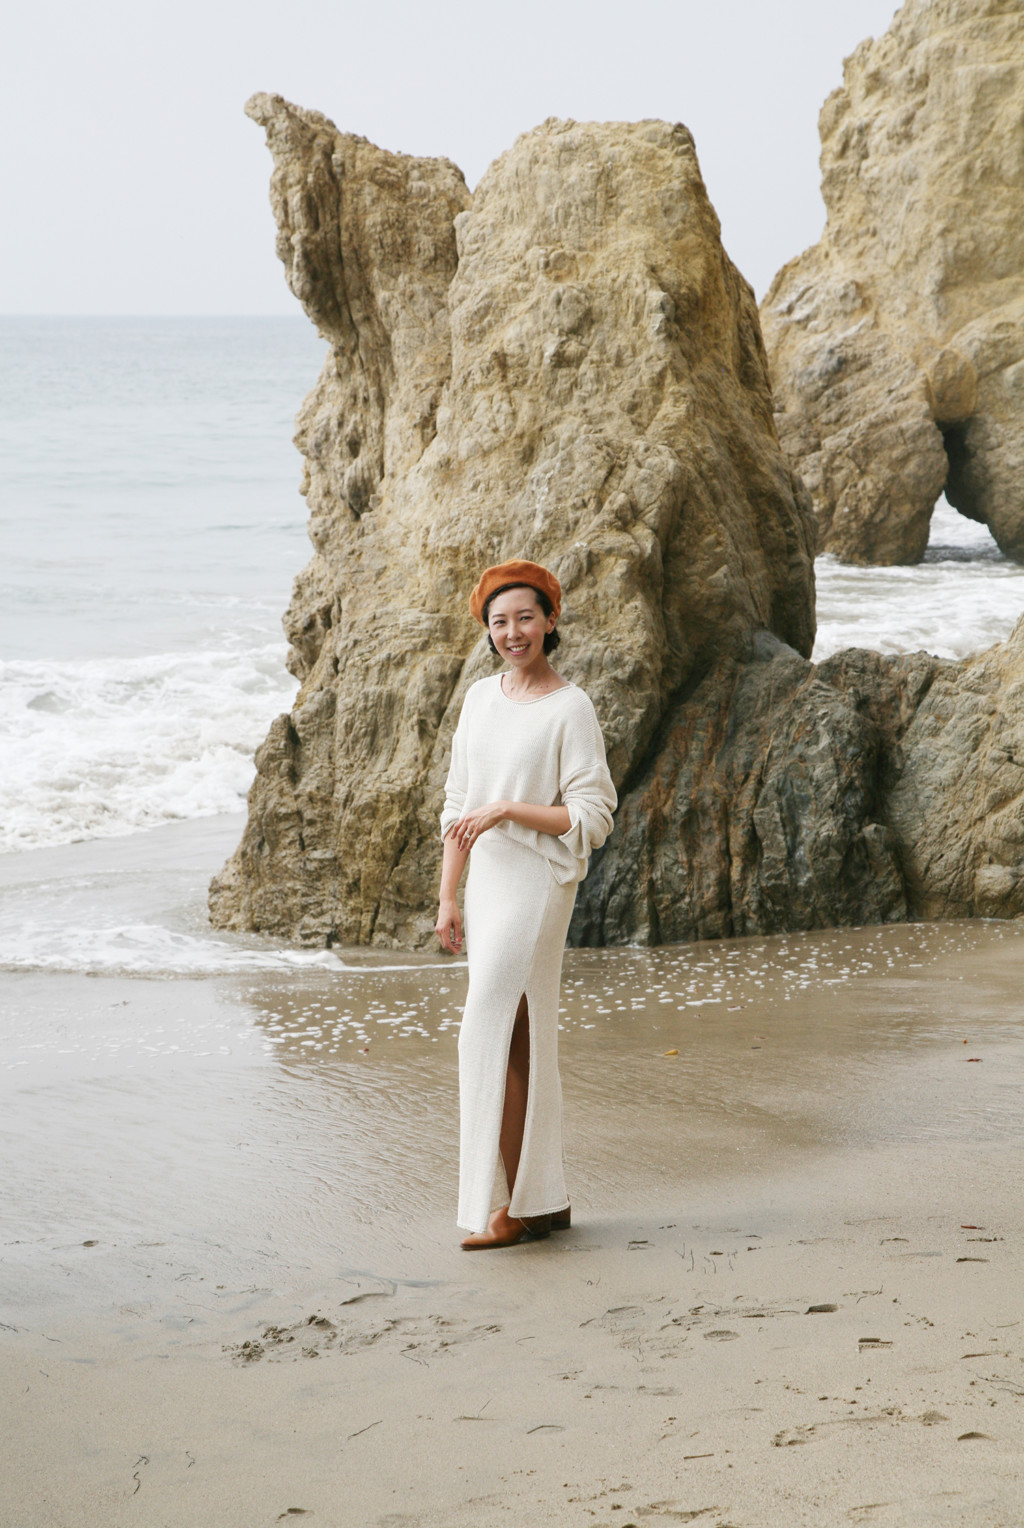 Jeanee stands on a beach wearing a white top and a white skirt. She's looking at the camera and smiling.